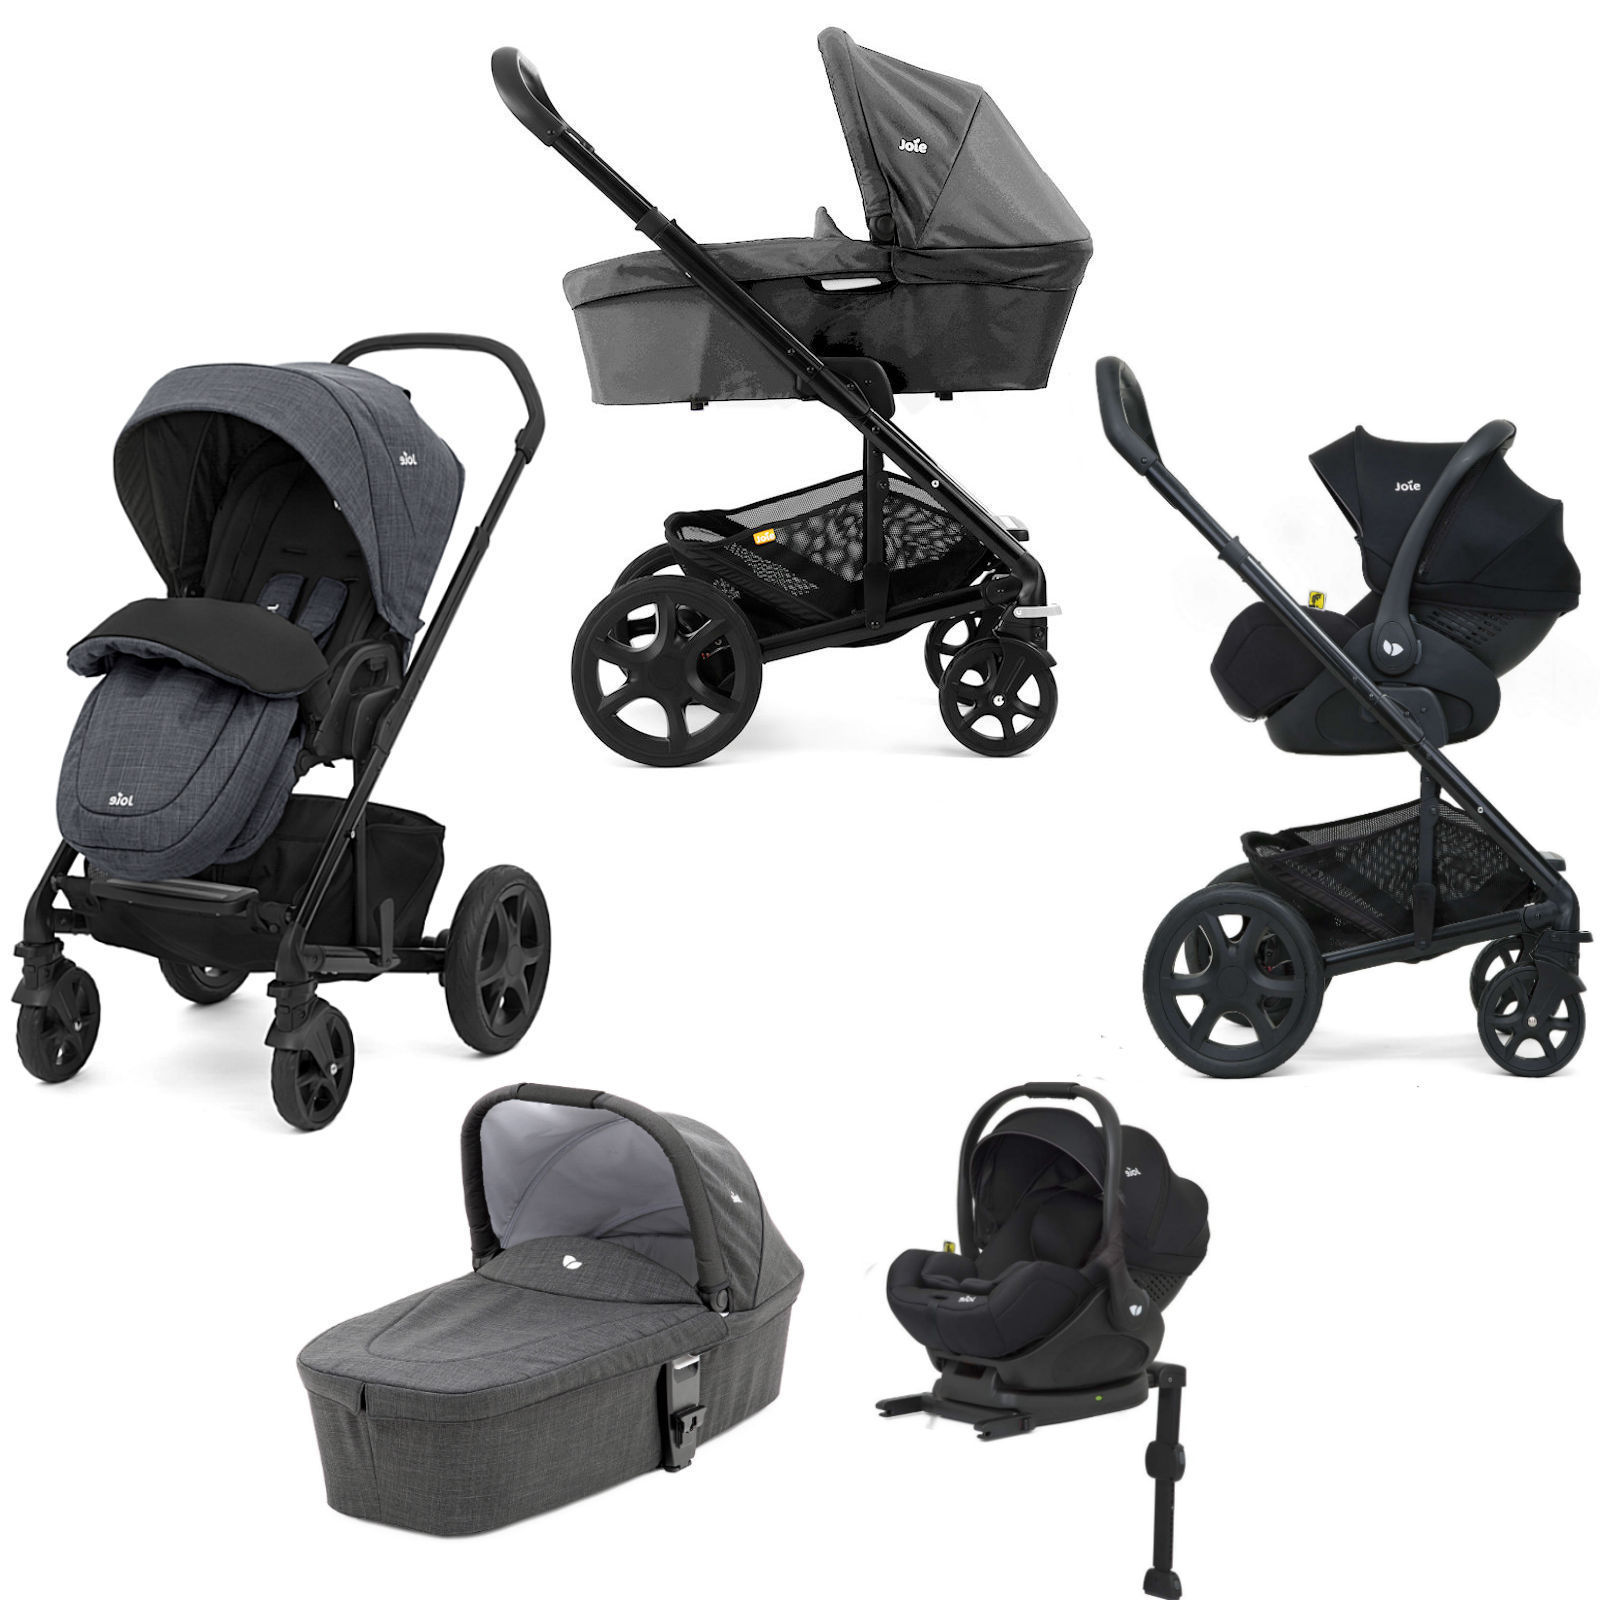 Joie Buggy Chrome Test Joie Chrome Dlx I Level Travel System With Carrycot Inc